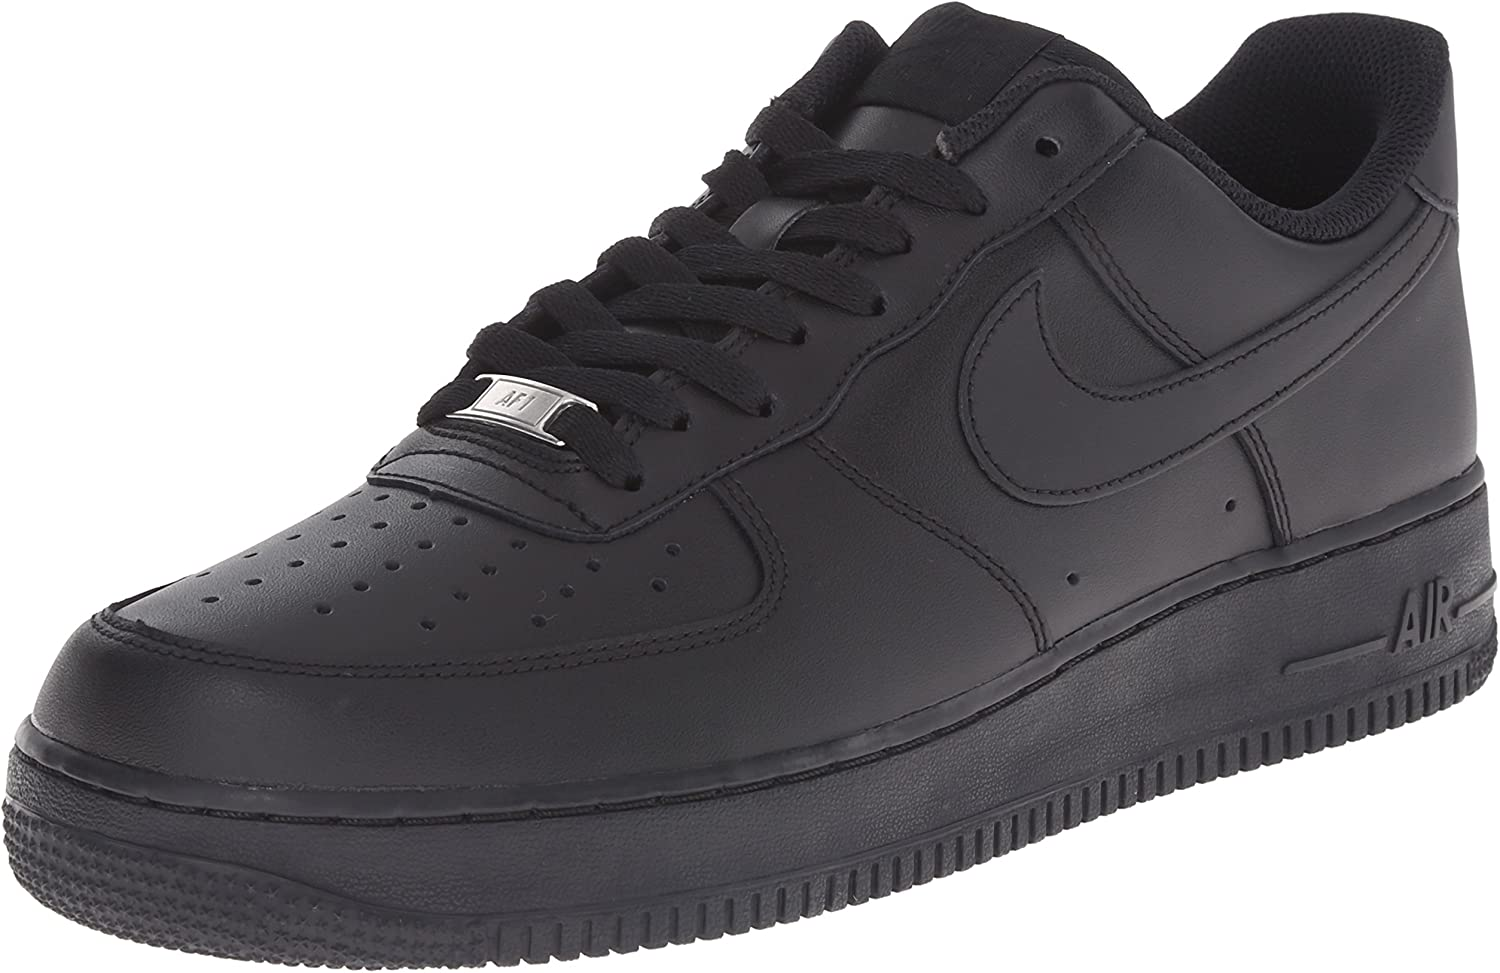 Nike Unisex-Erwachsene Air Force 1 '07 Low-Top Schwarz Black), 38.5 EU B001IDLGN8  | Neu